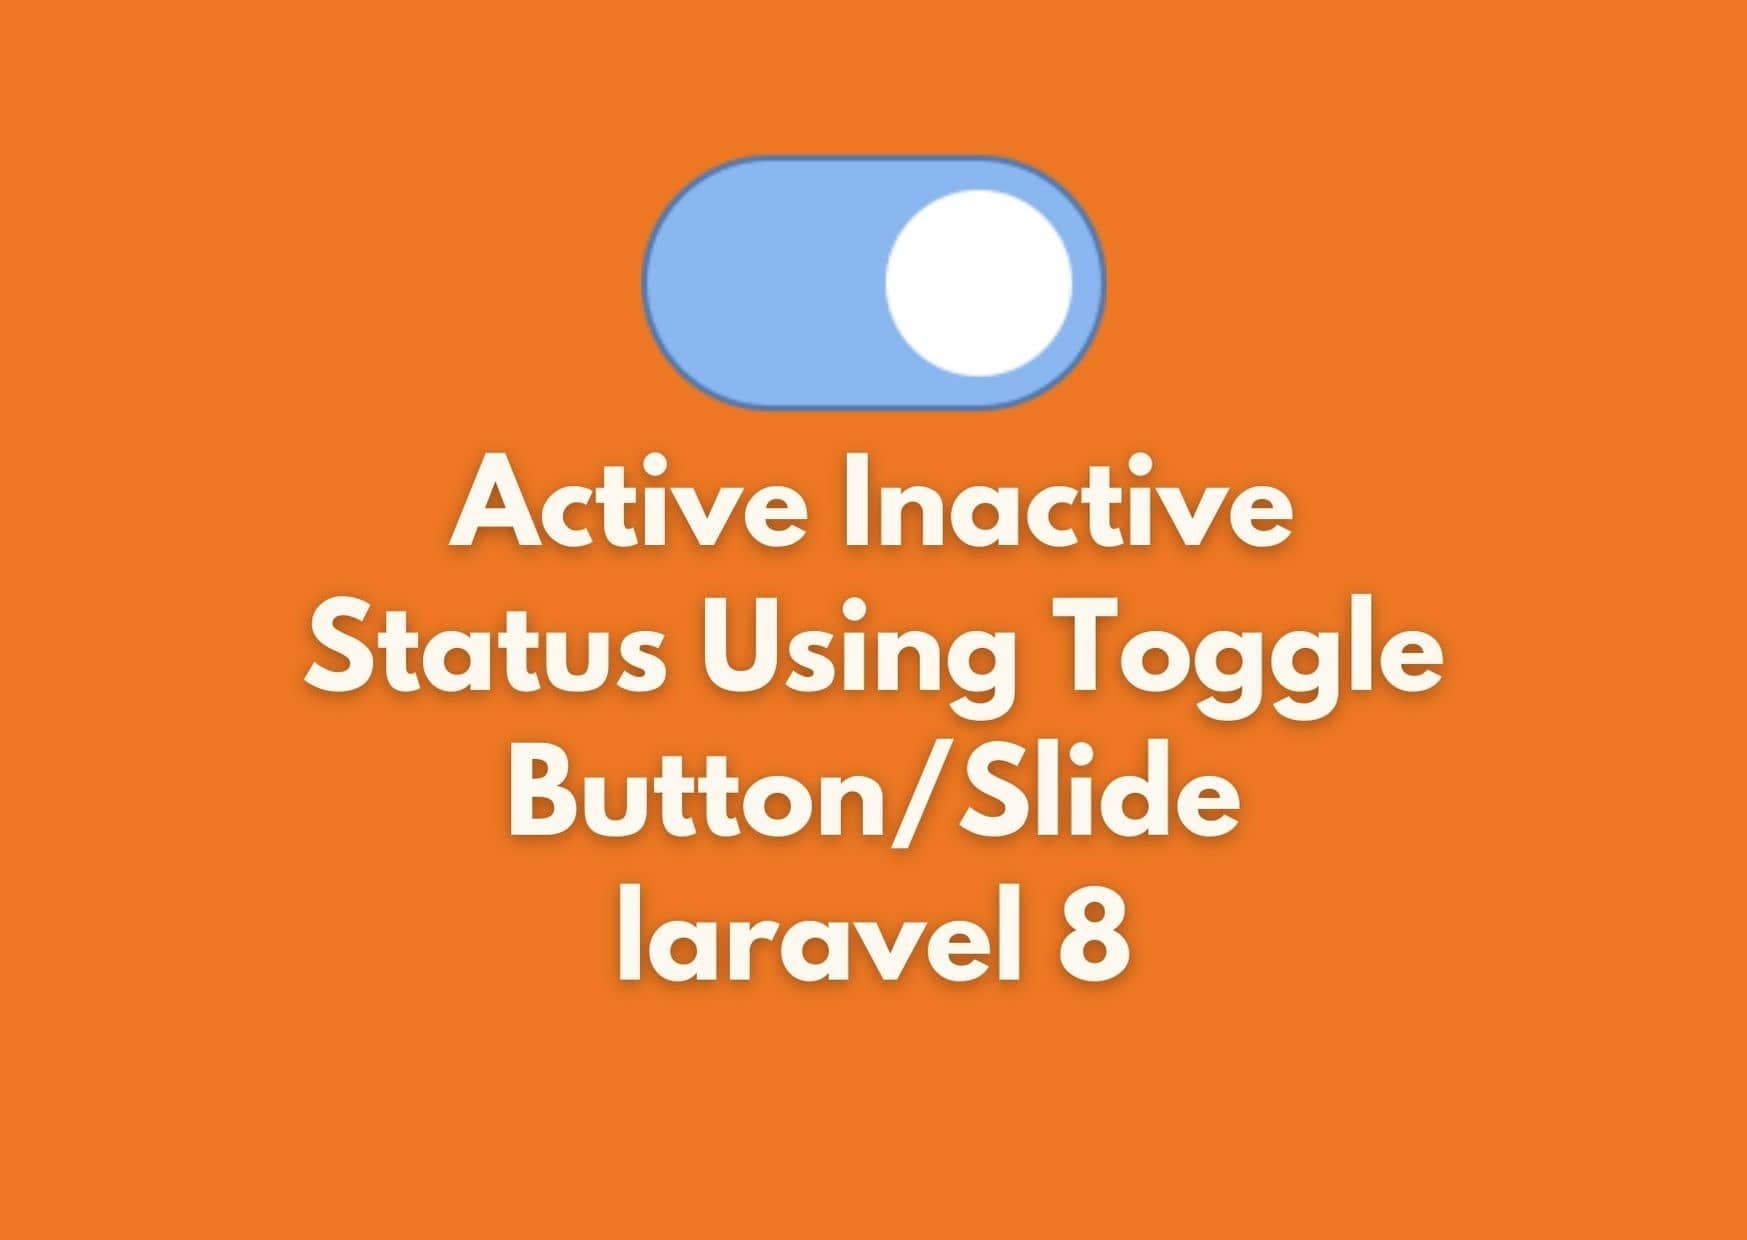 Active Inactive Status Using Toggle Button/Slide laravel 8